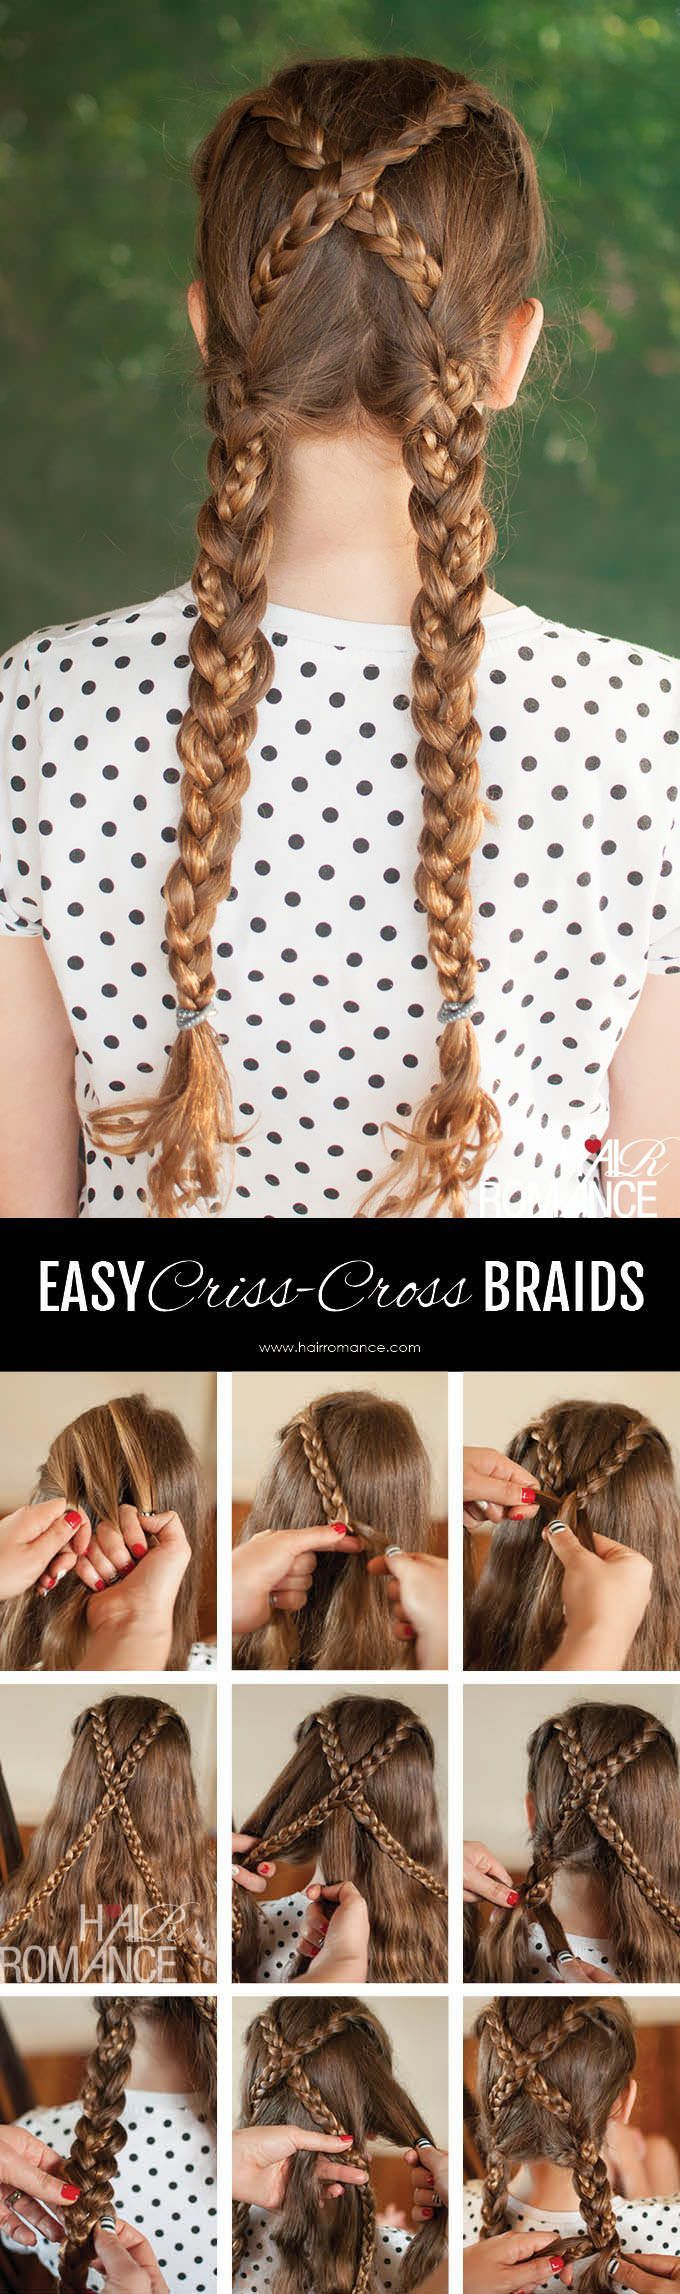 20+ fancy little girl braids hairstyle | girls braided hairstyles